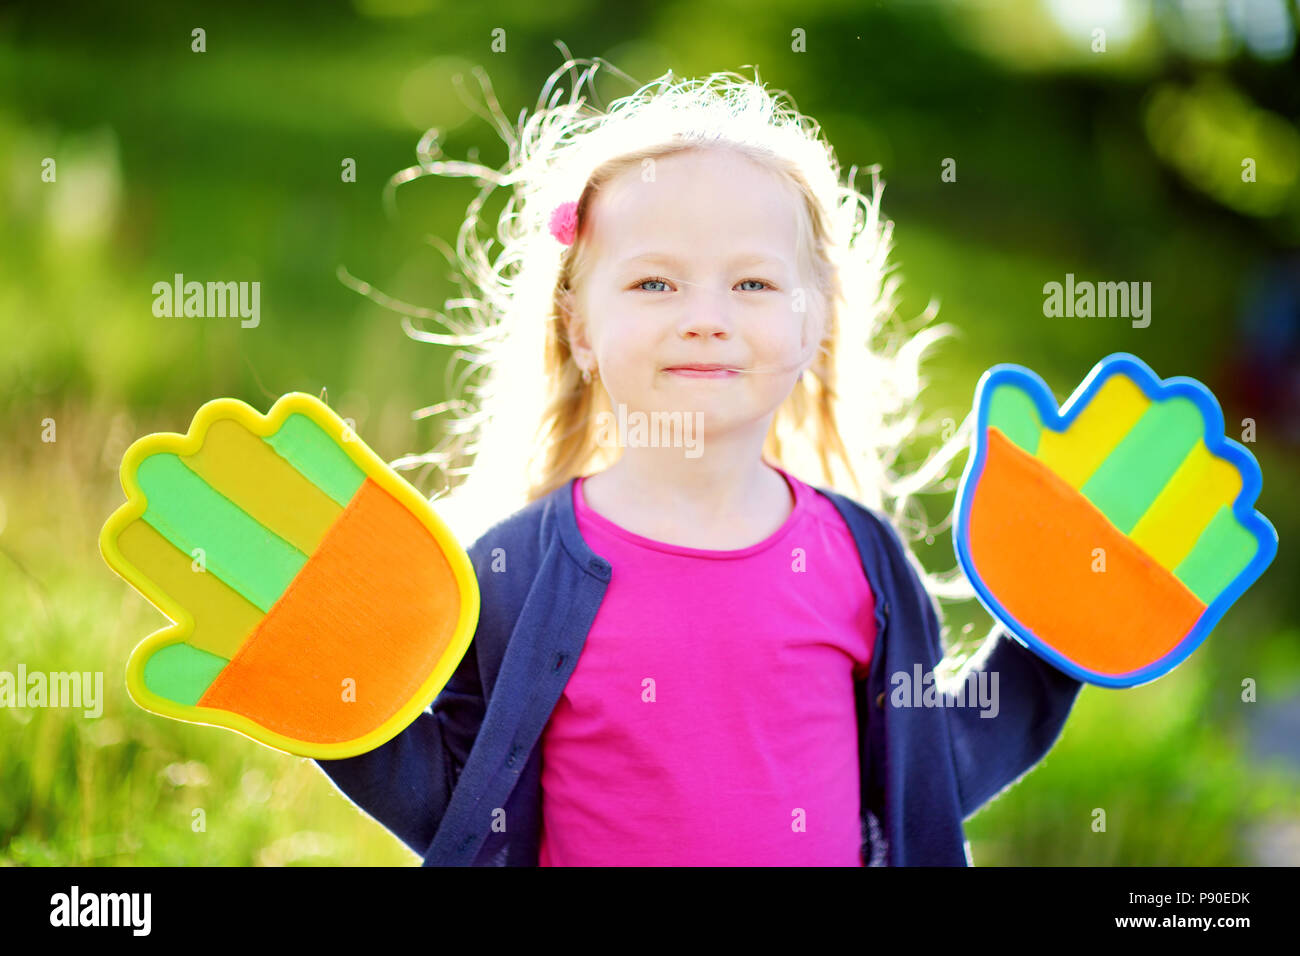 Cute little girl playing a ball catching game with sticky velcro palm pads on beautiful summer day - Stock Image